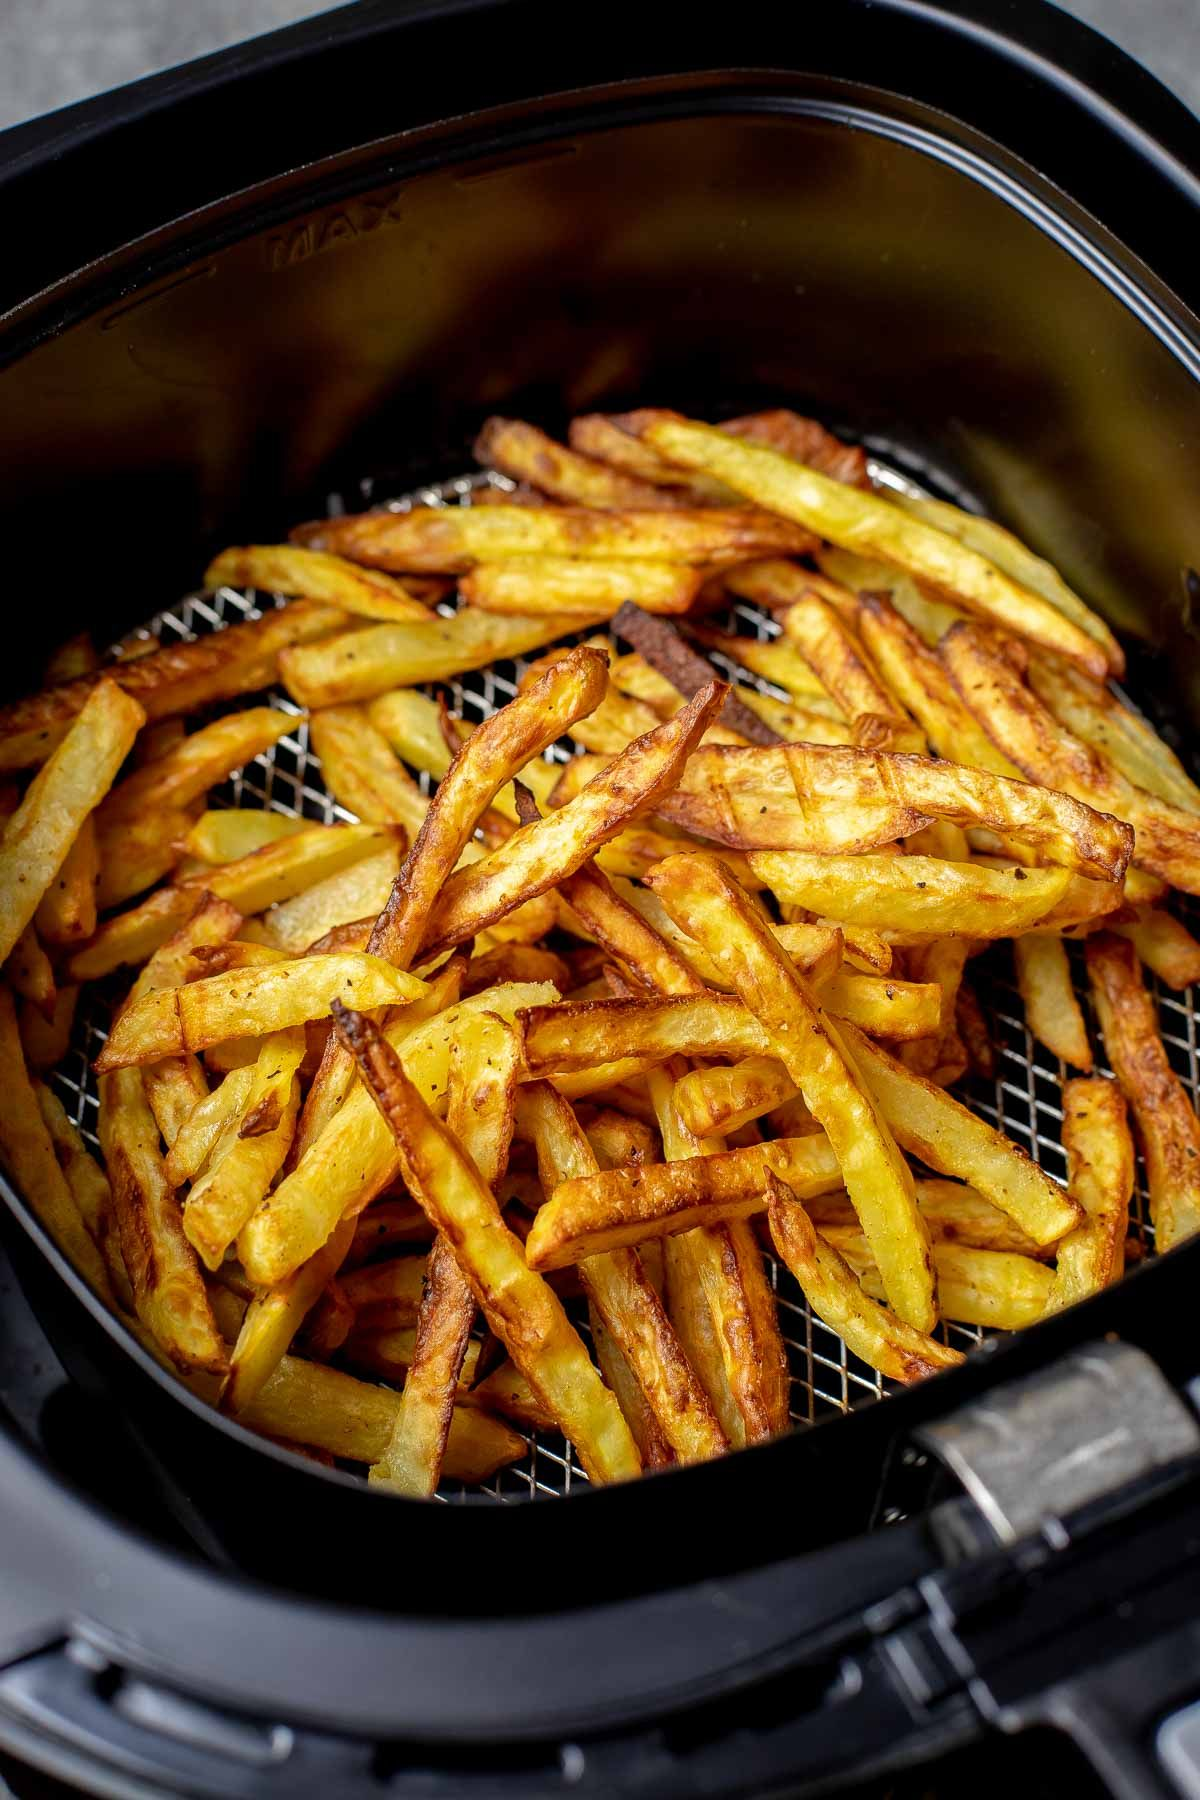 Air fryer French Fries are the deep fried french fries